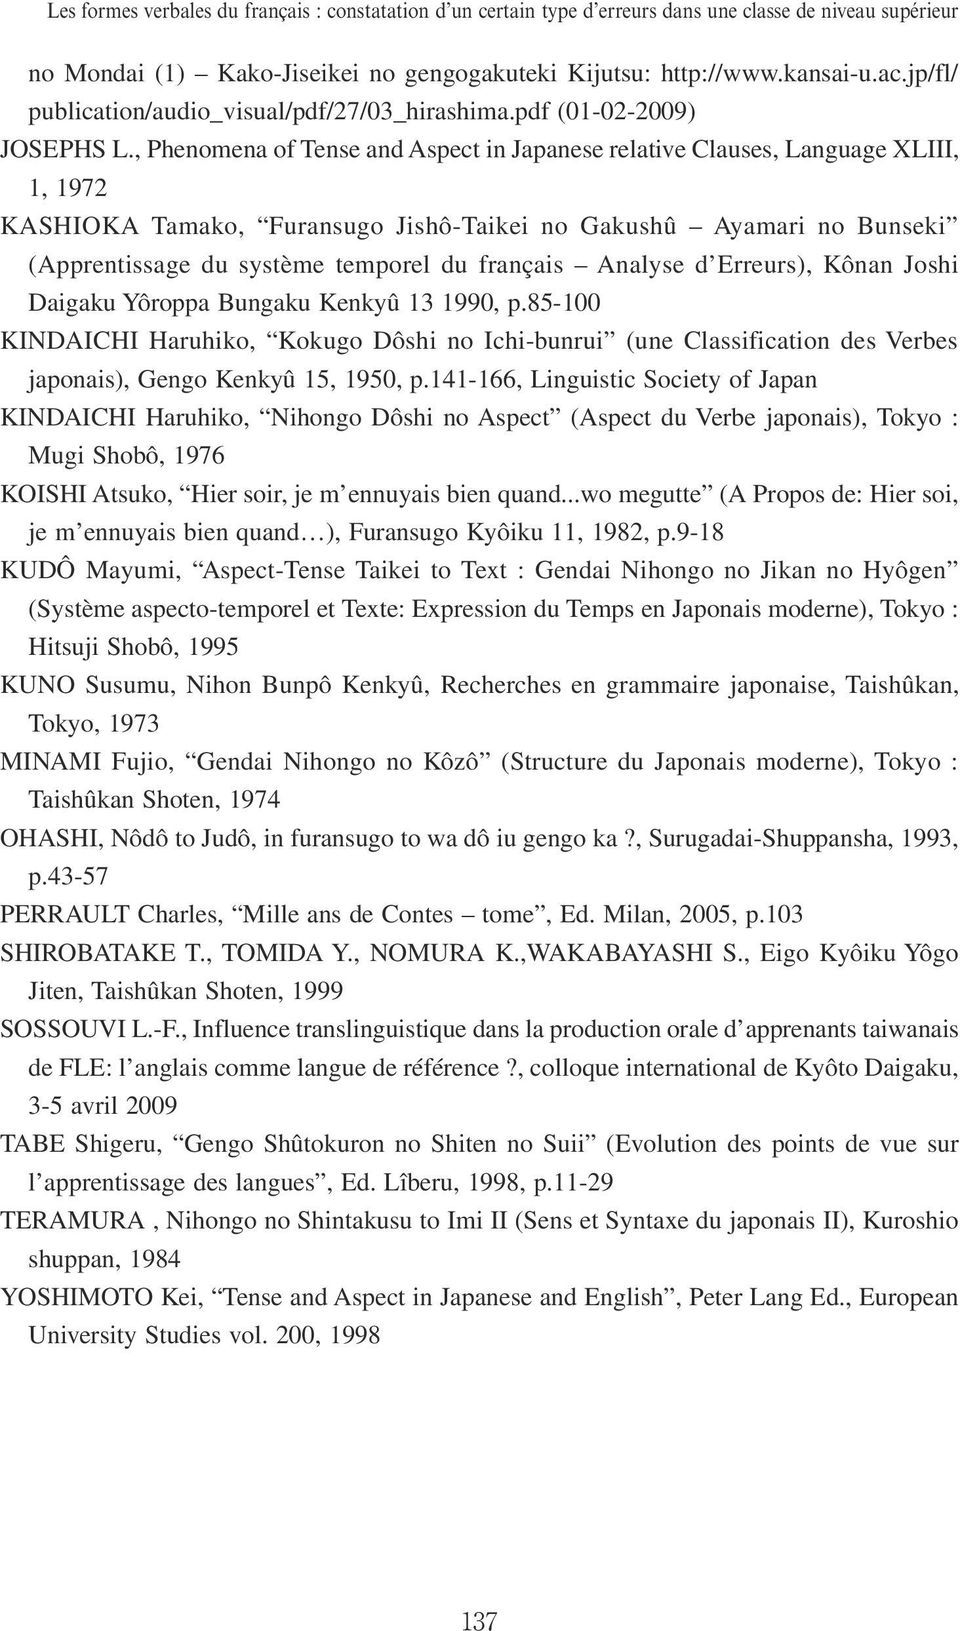 , Phenomena of Tense and Aspect in Japanese relative Clauses, Language XLIII, 1, 1972 KASHIOKA Tamako, Furansugo Jishô-Taikei no Gakushû Ayamari no Bunseki (Apprentissage du système temporel du